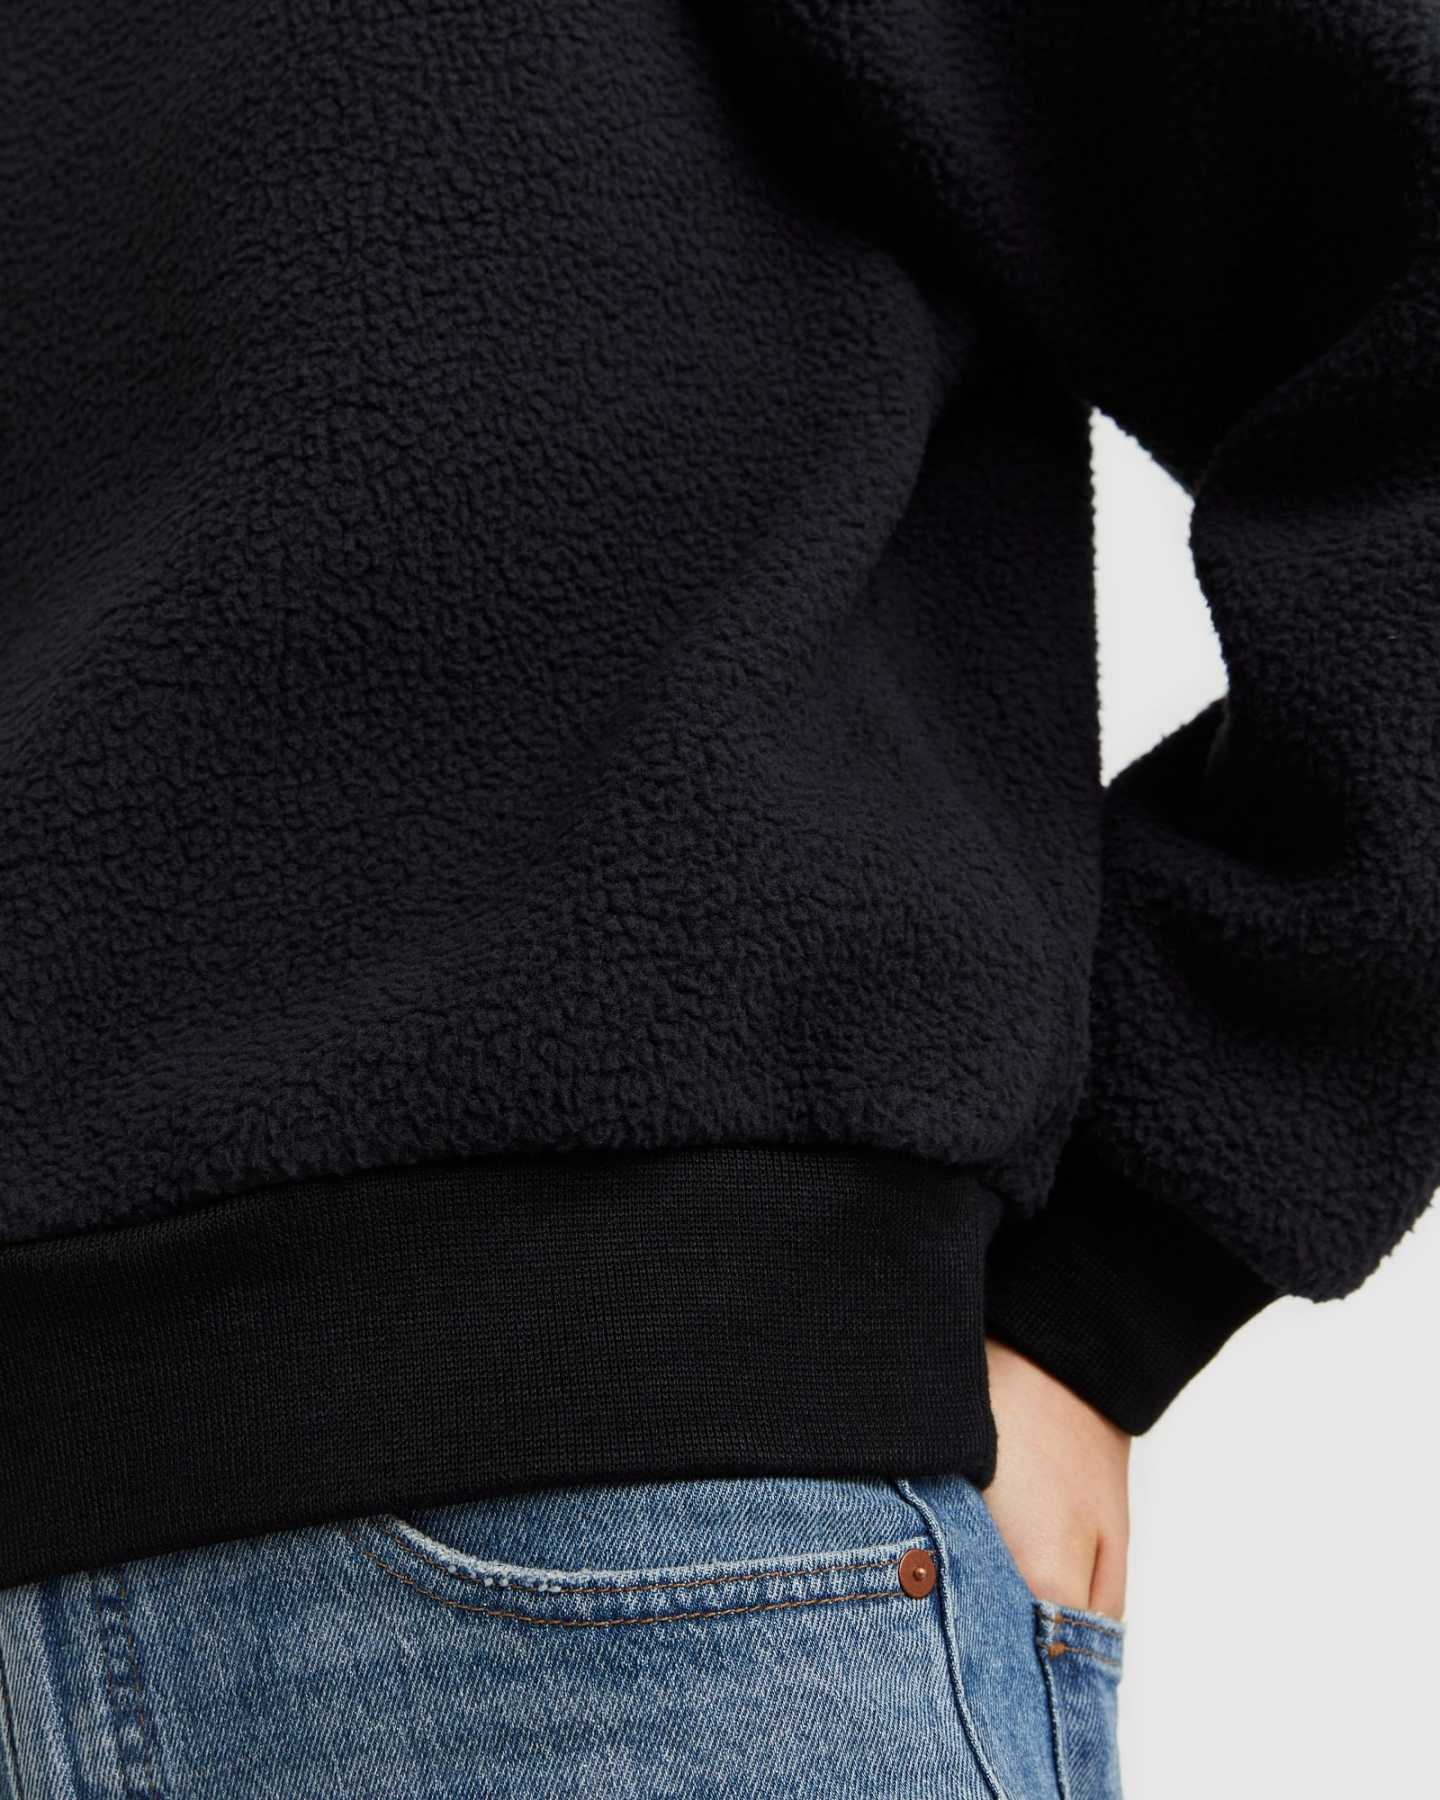 woman wearing sherpa crewneck sweatshirt in black sleeve